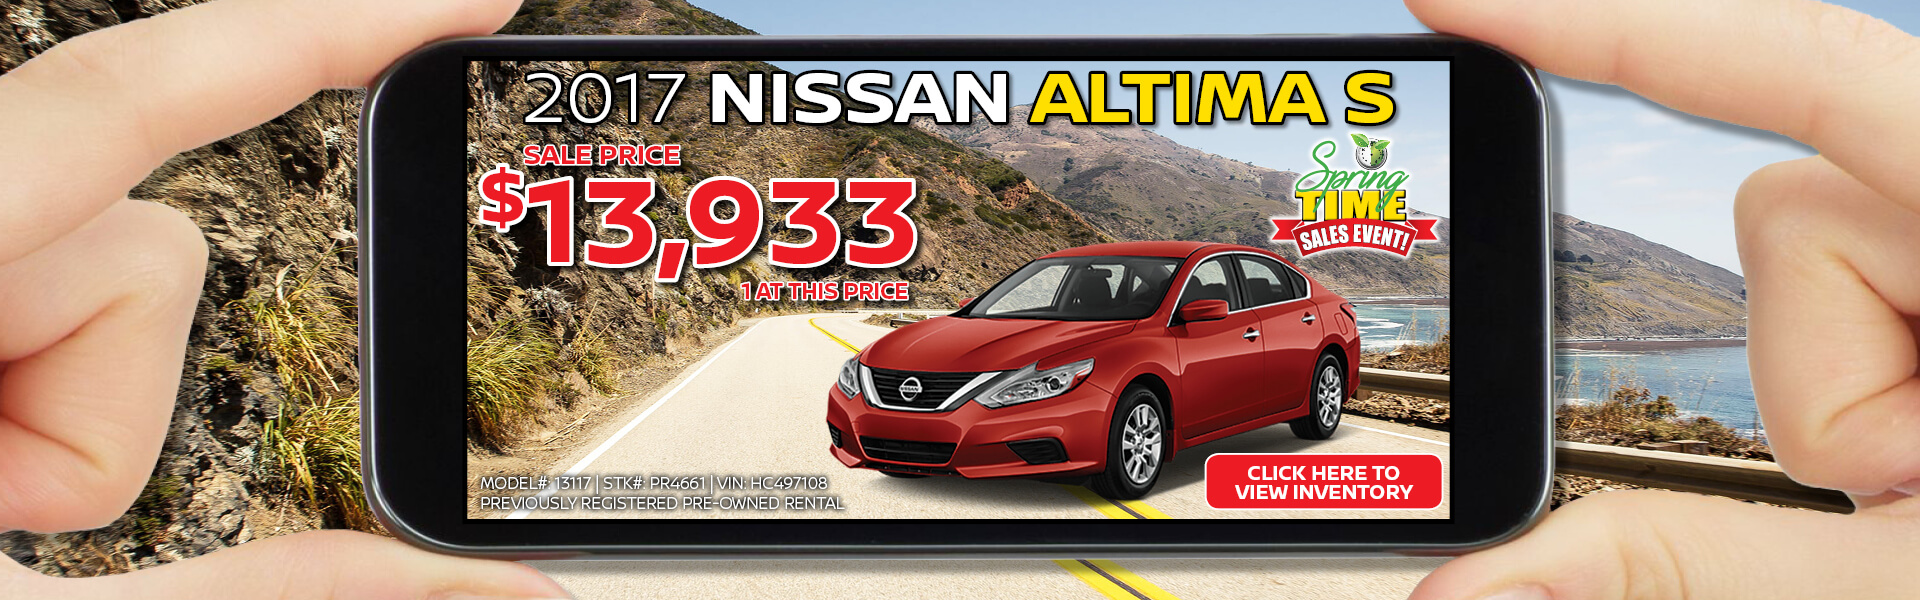 Altima - Pre-Owned Rental